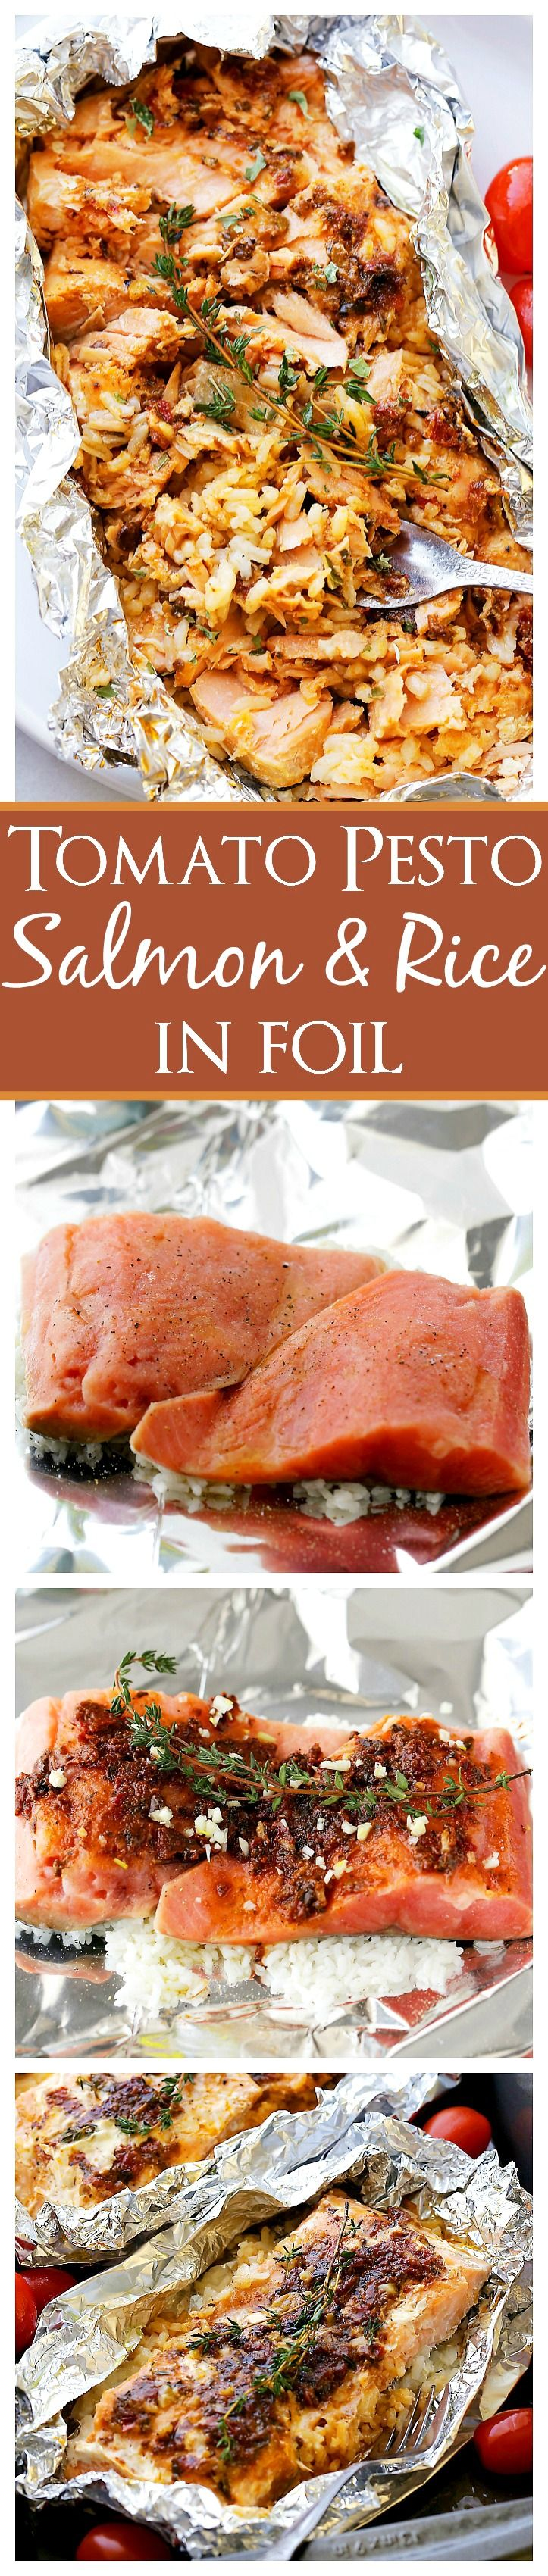 Tomato Pesto Salmon And Rice Recipe Baked In Foil